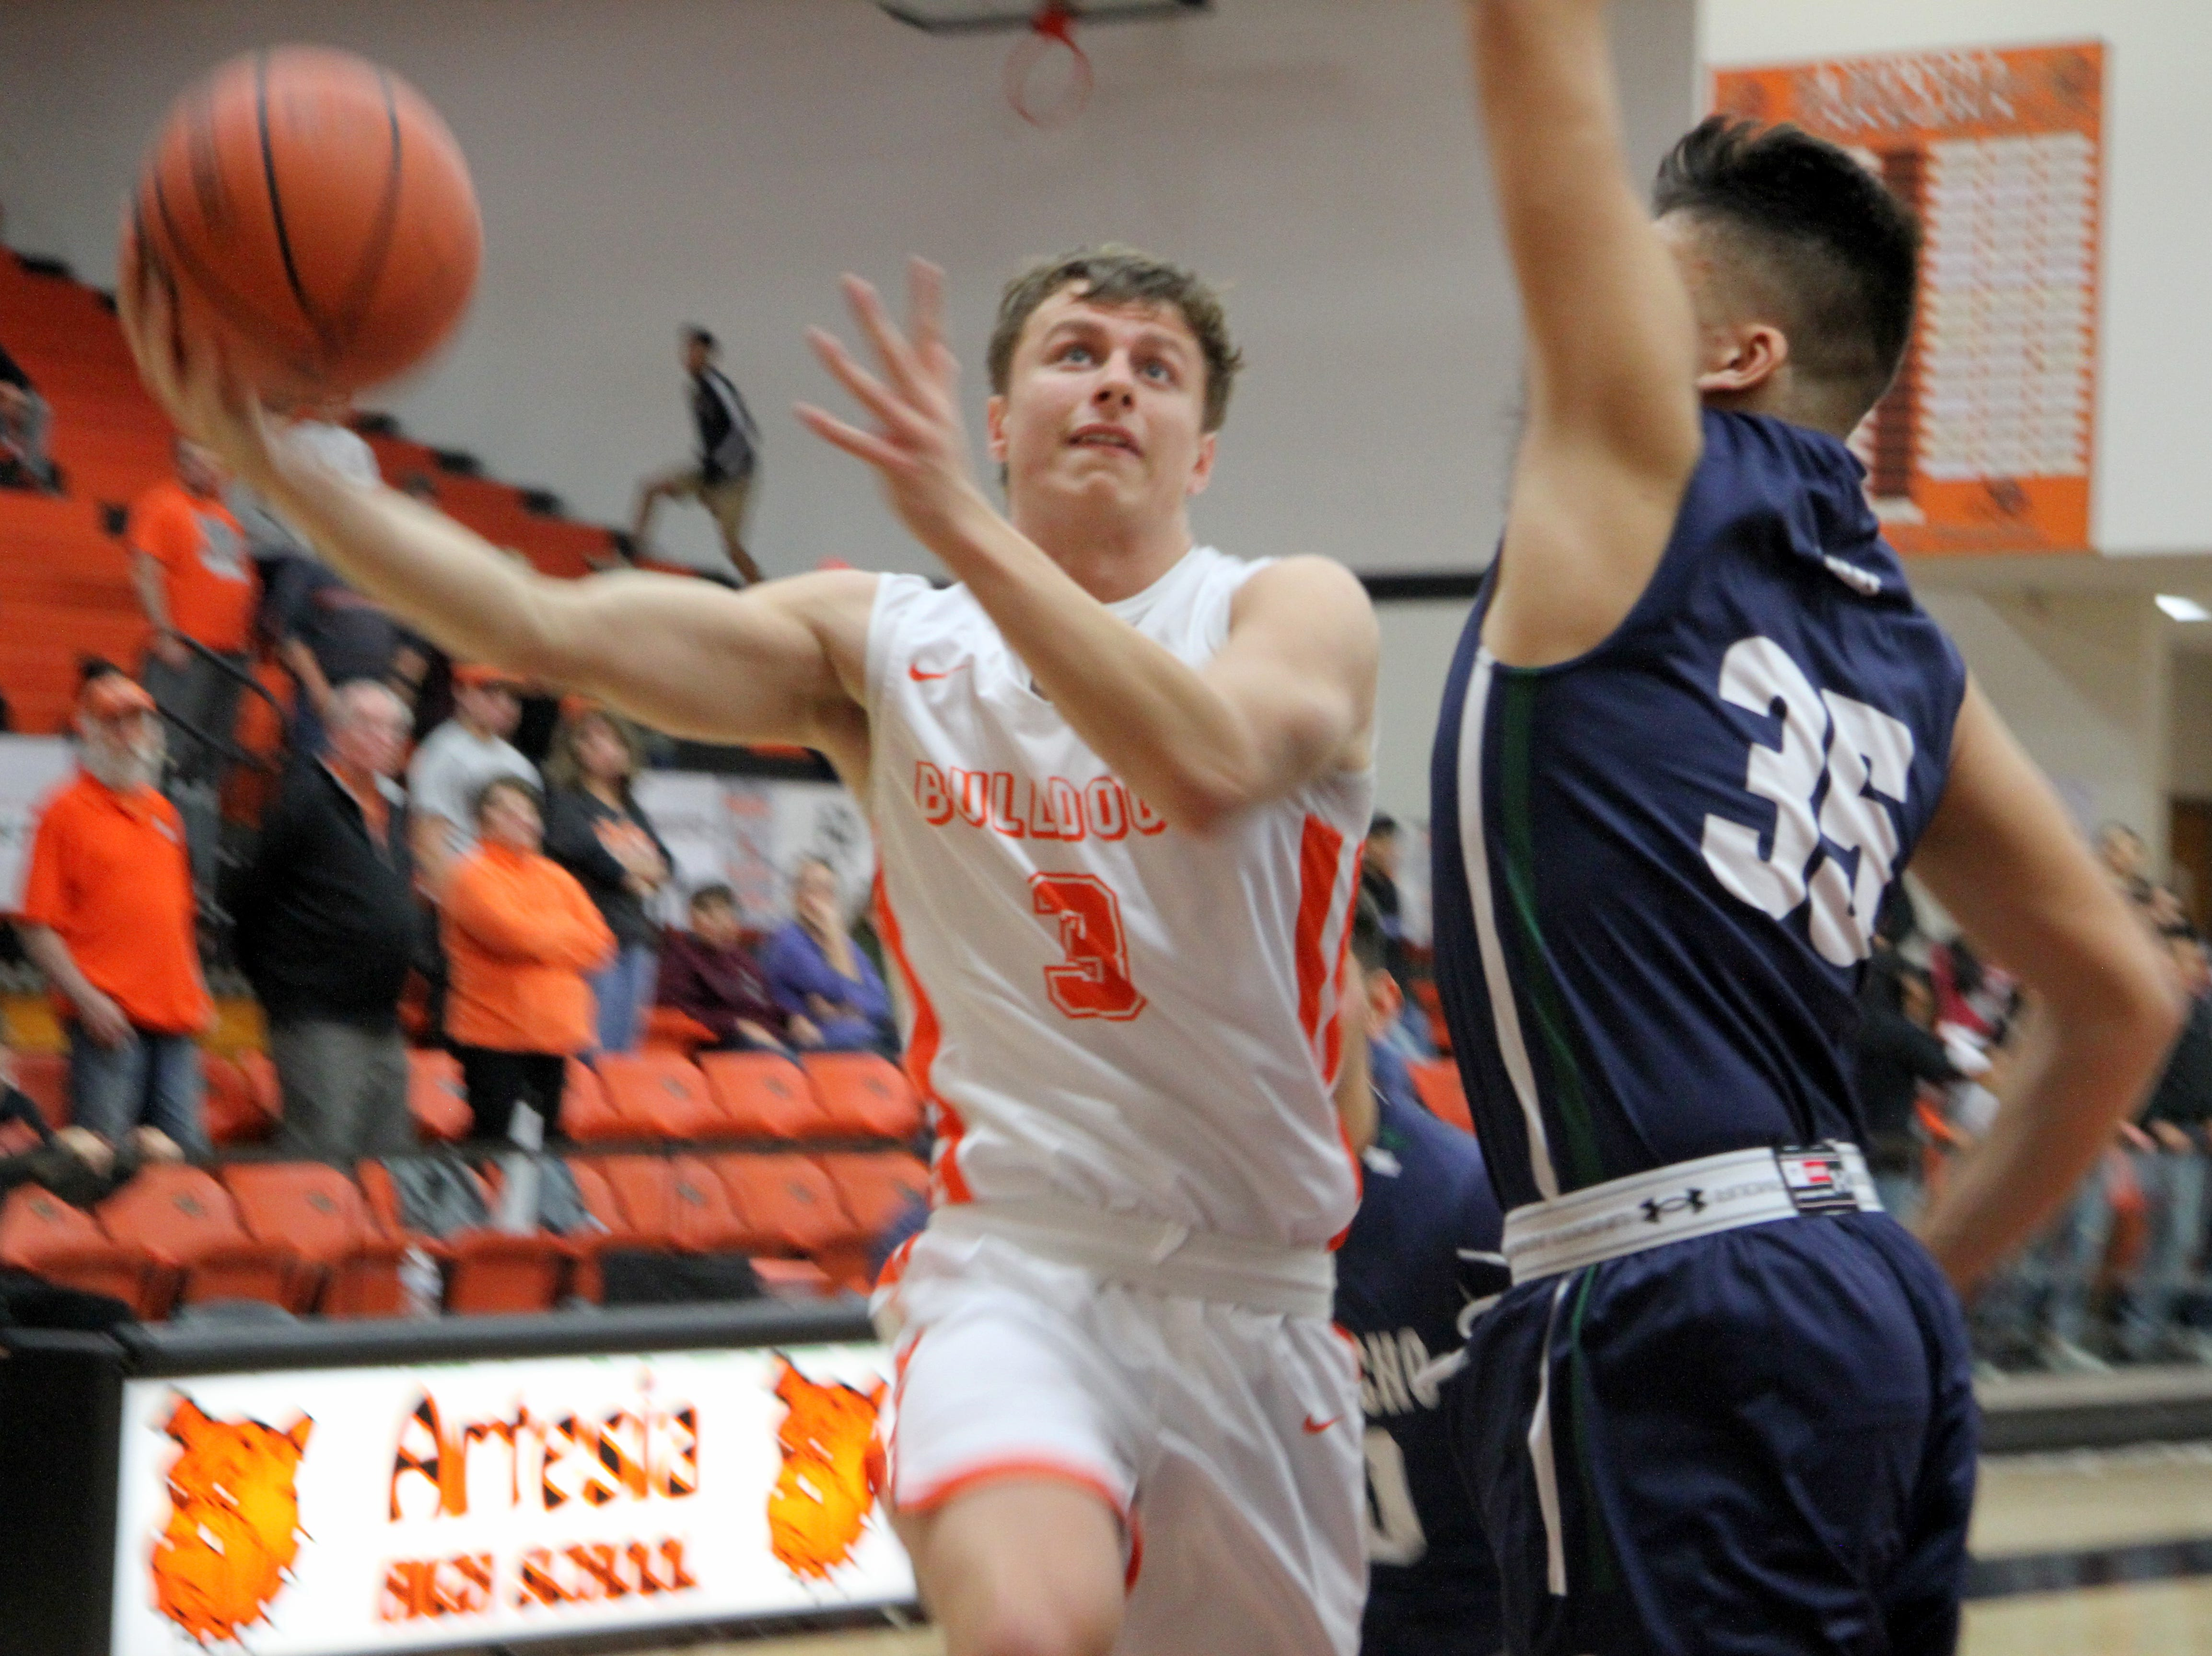 Artesia's Cody Smith goes for a contested layup during Friday's second round of the Artesia Tournament of Champions against Rio Rancho.